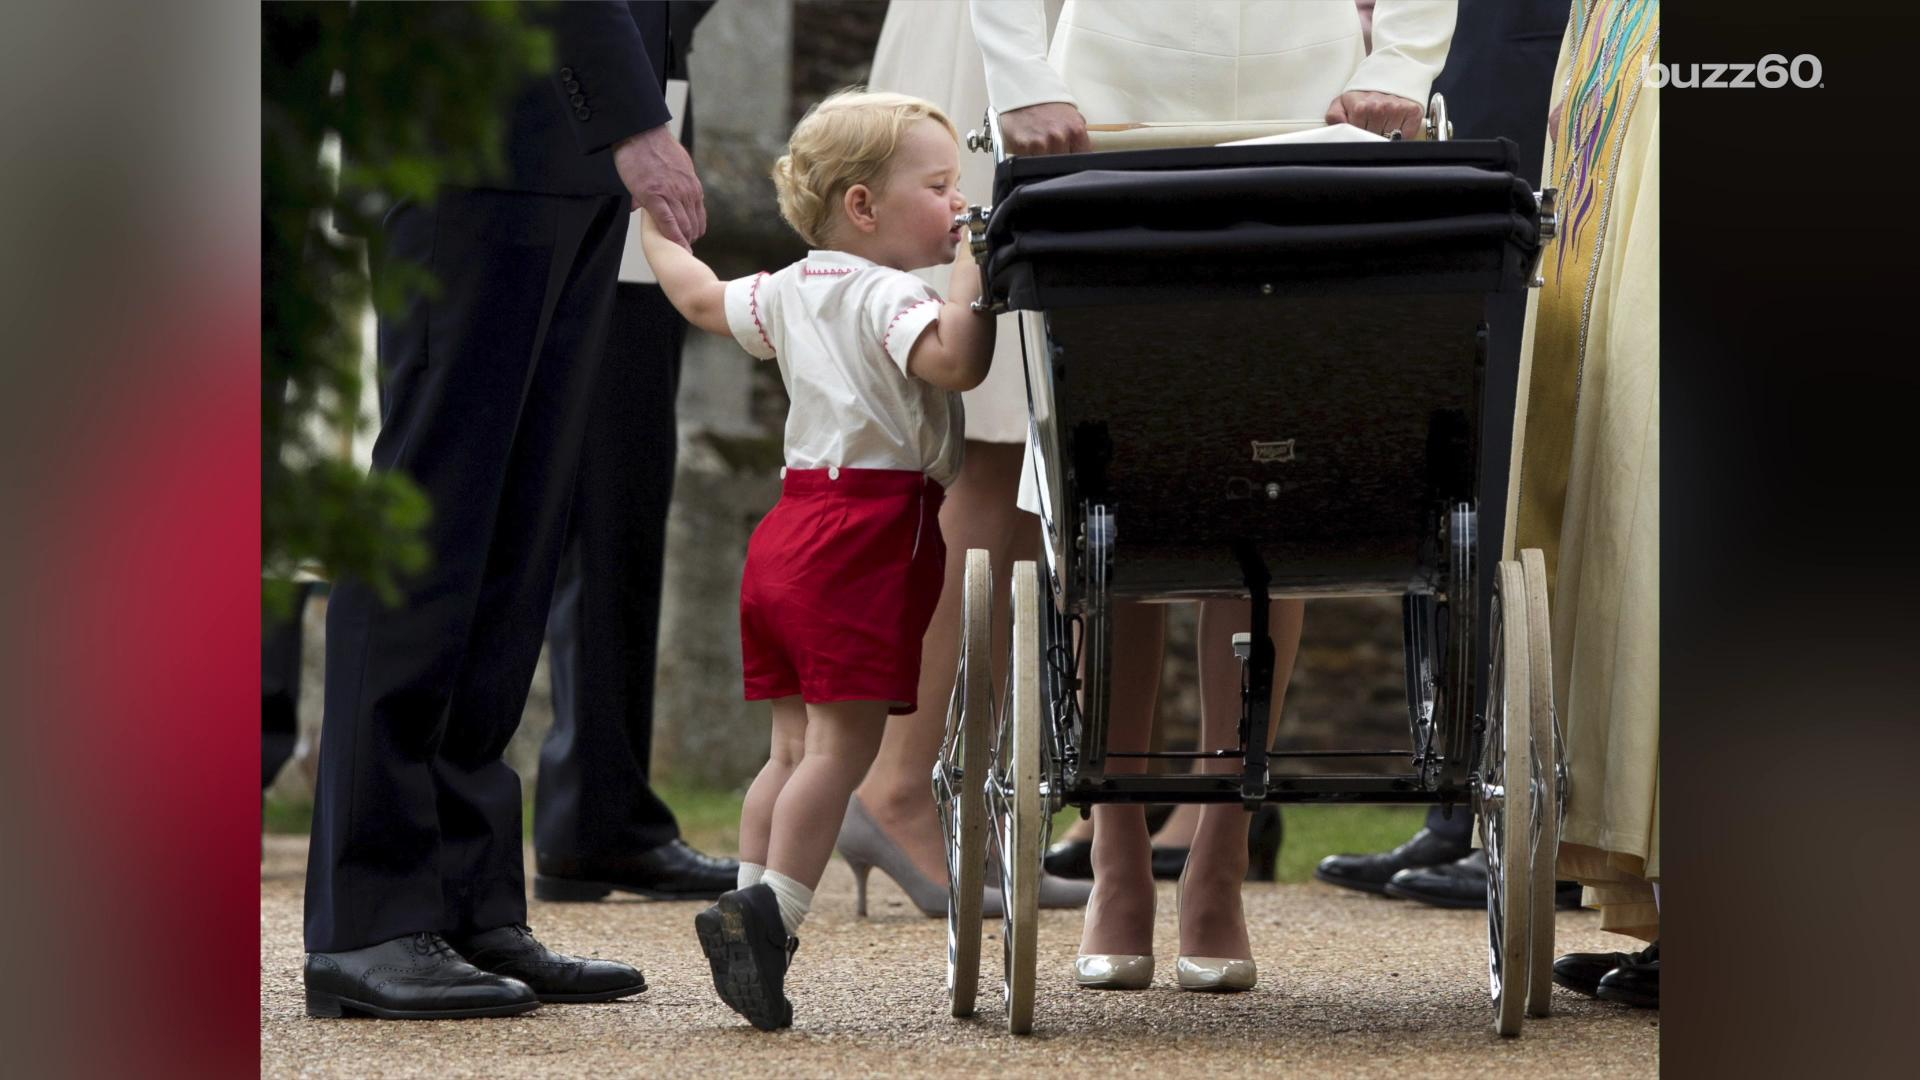 Kensington Palace warns paparazzi to back off Prince George